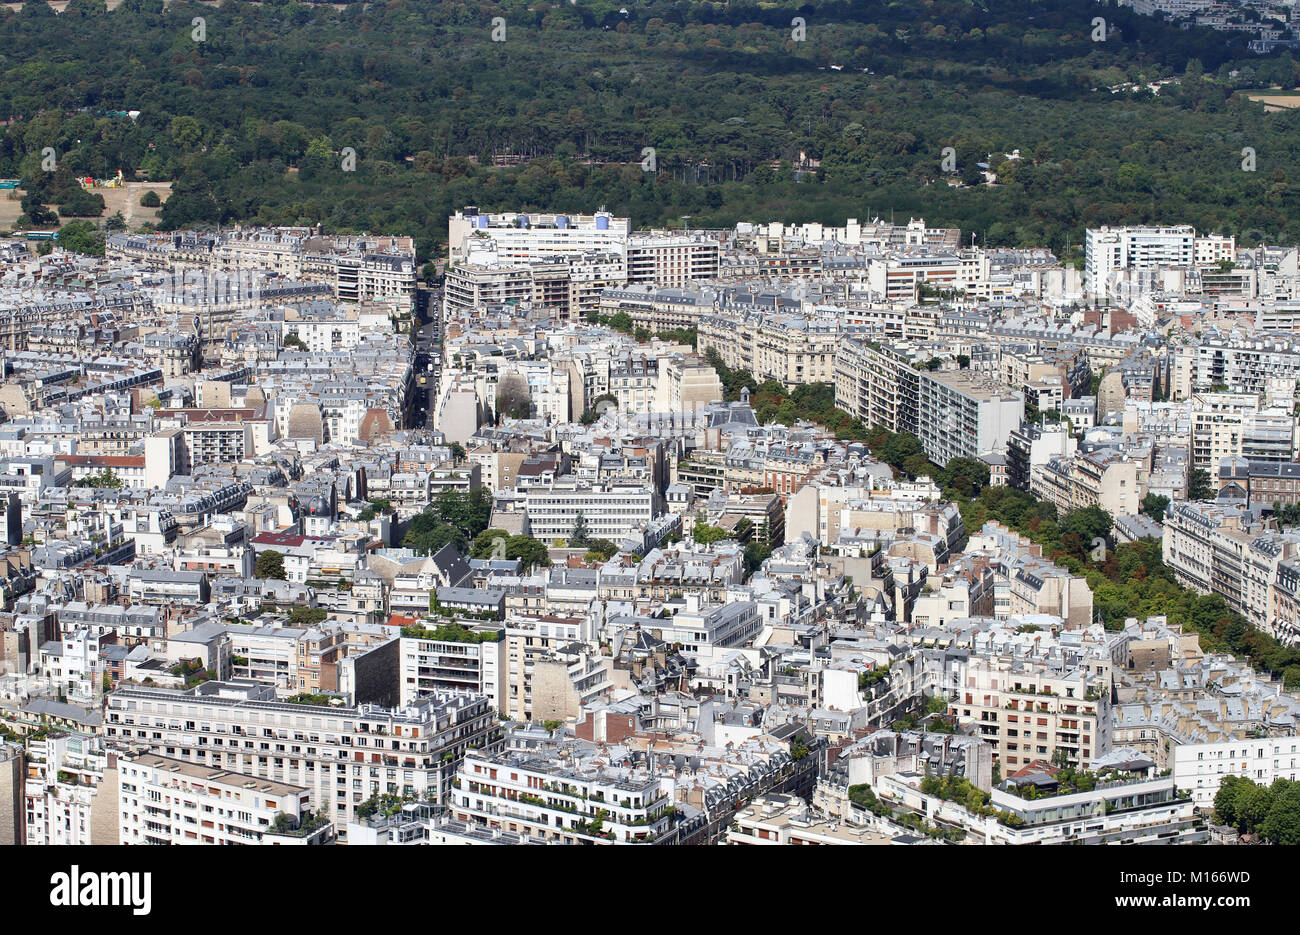 View of Paris from the top of the Eiffel Tower, Paris, France. Stock Photo